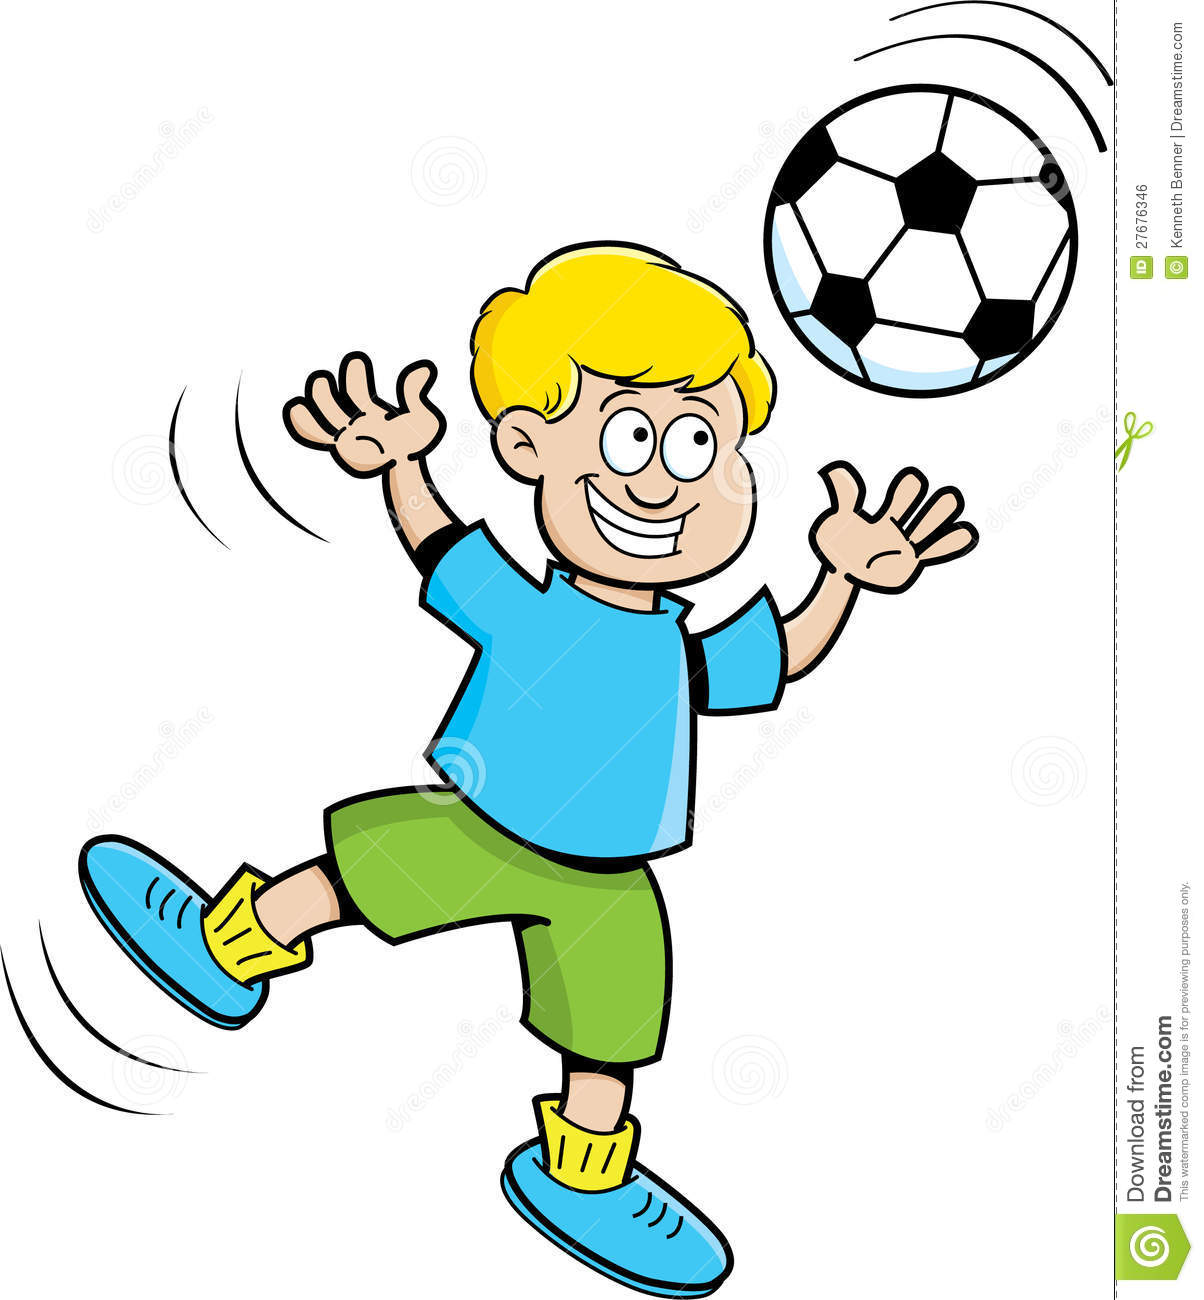 Cartoon Boy Playing Soccer Royalty Free Stock Image - Image: 27676346